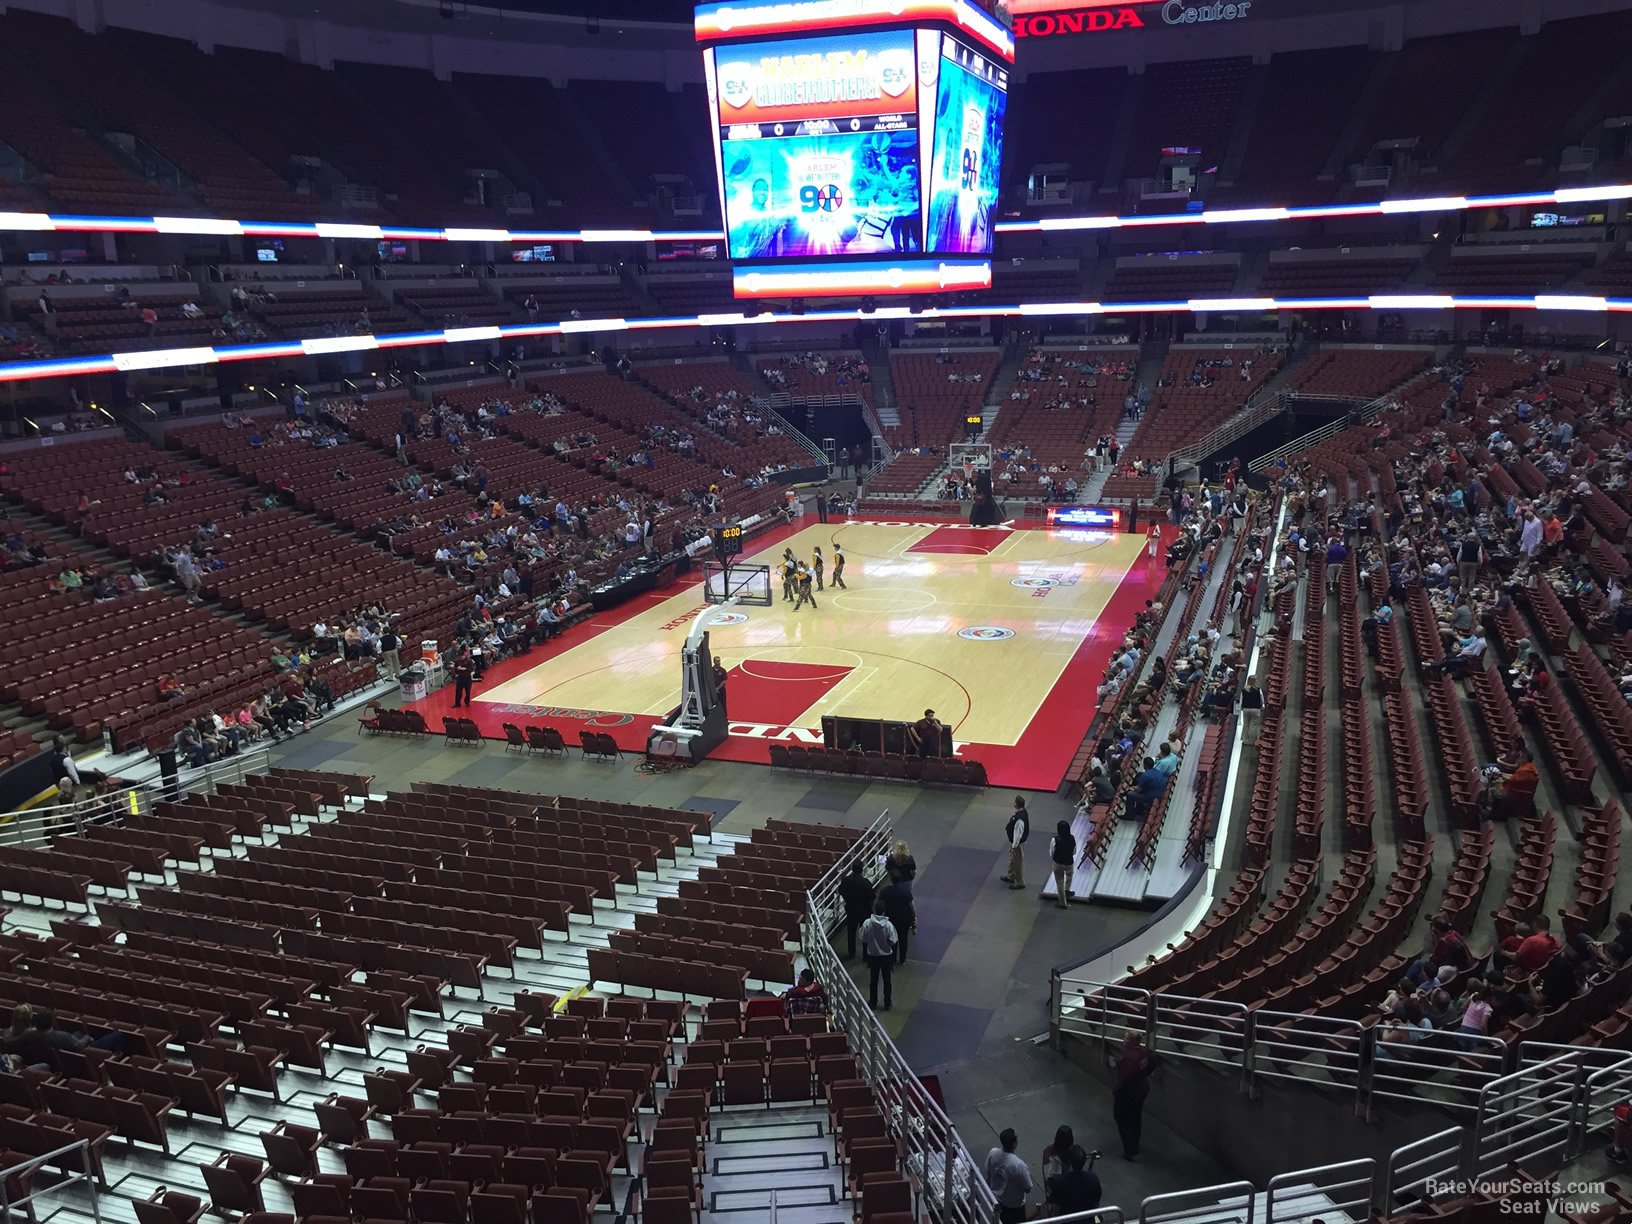 Superior Basketball Seat View For Honda Center Section 325, Row C